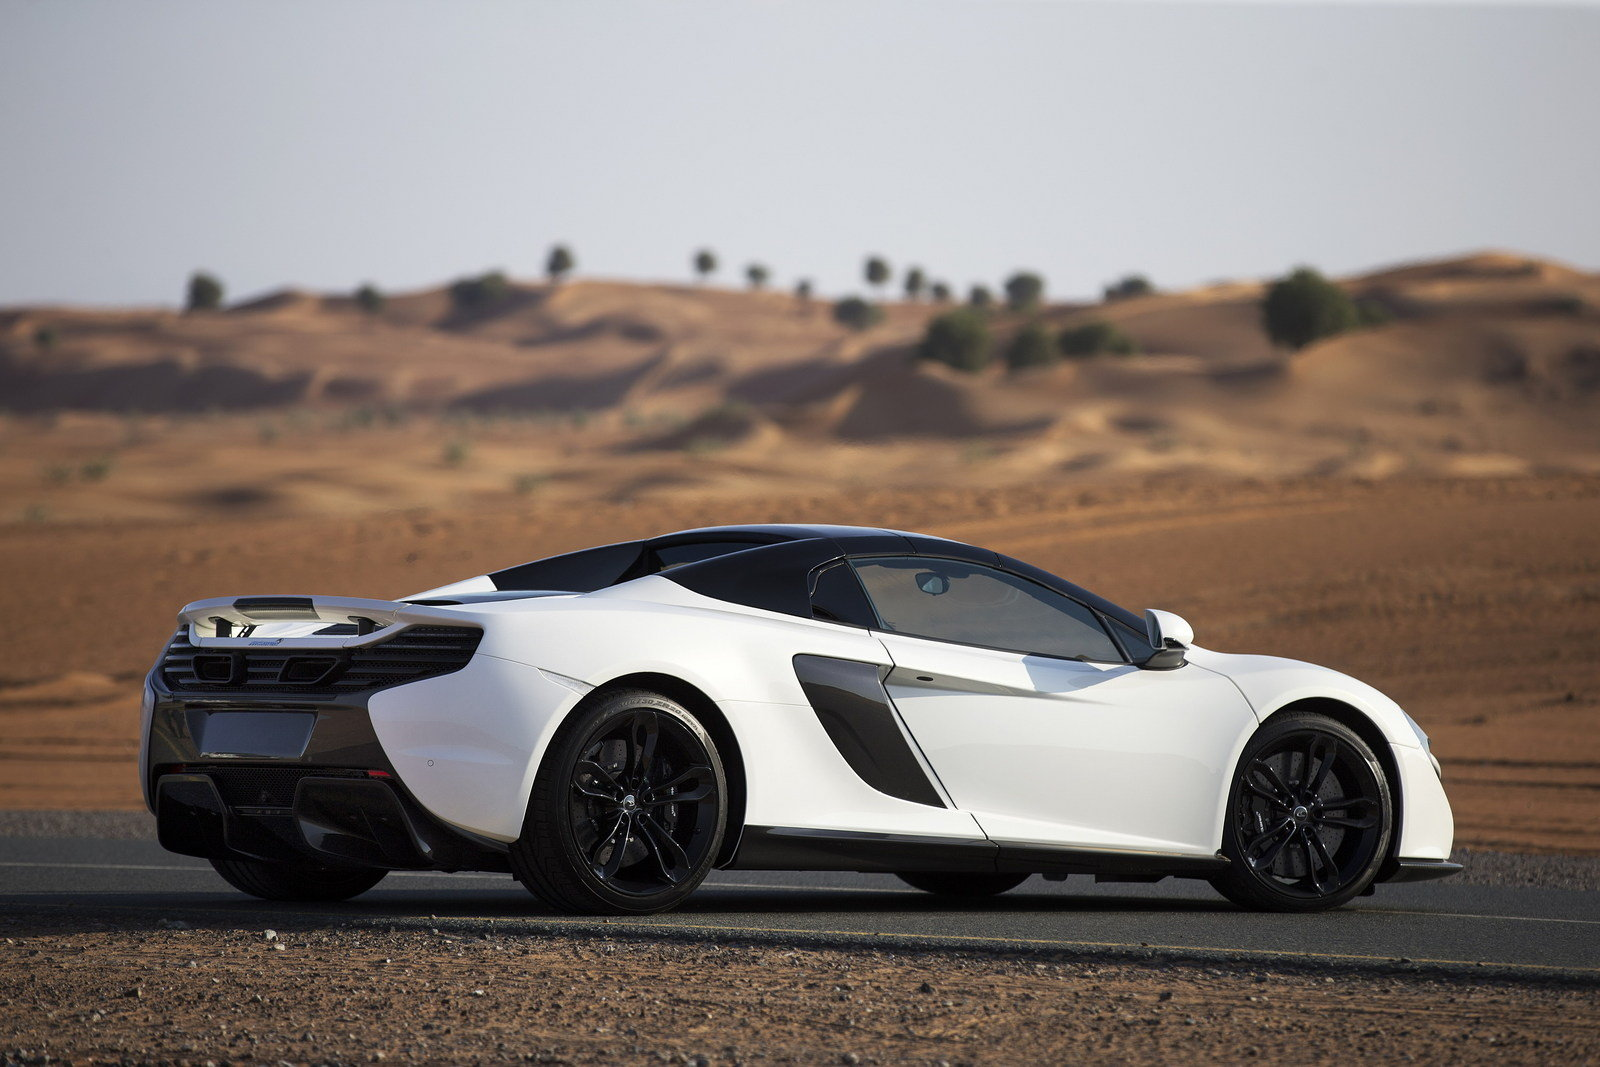 2016 mclaren 650s spider al sahara 79 by mso picture 654779 car review top speed. Black Bedroom Furniture Sets. Home Design Ideas